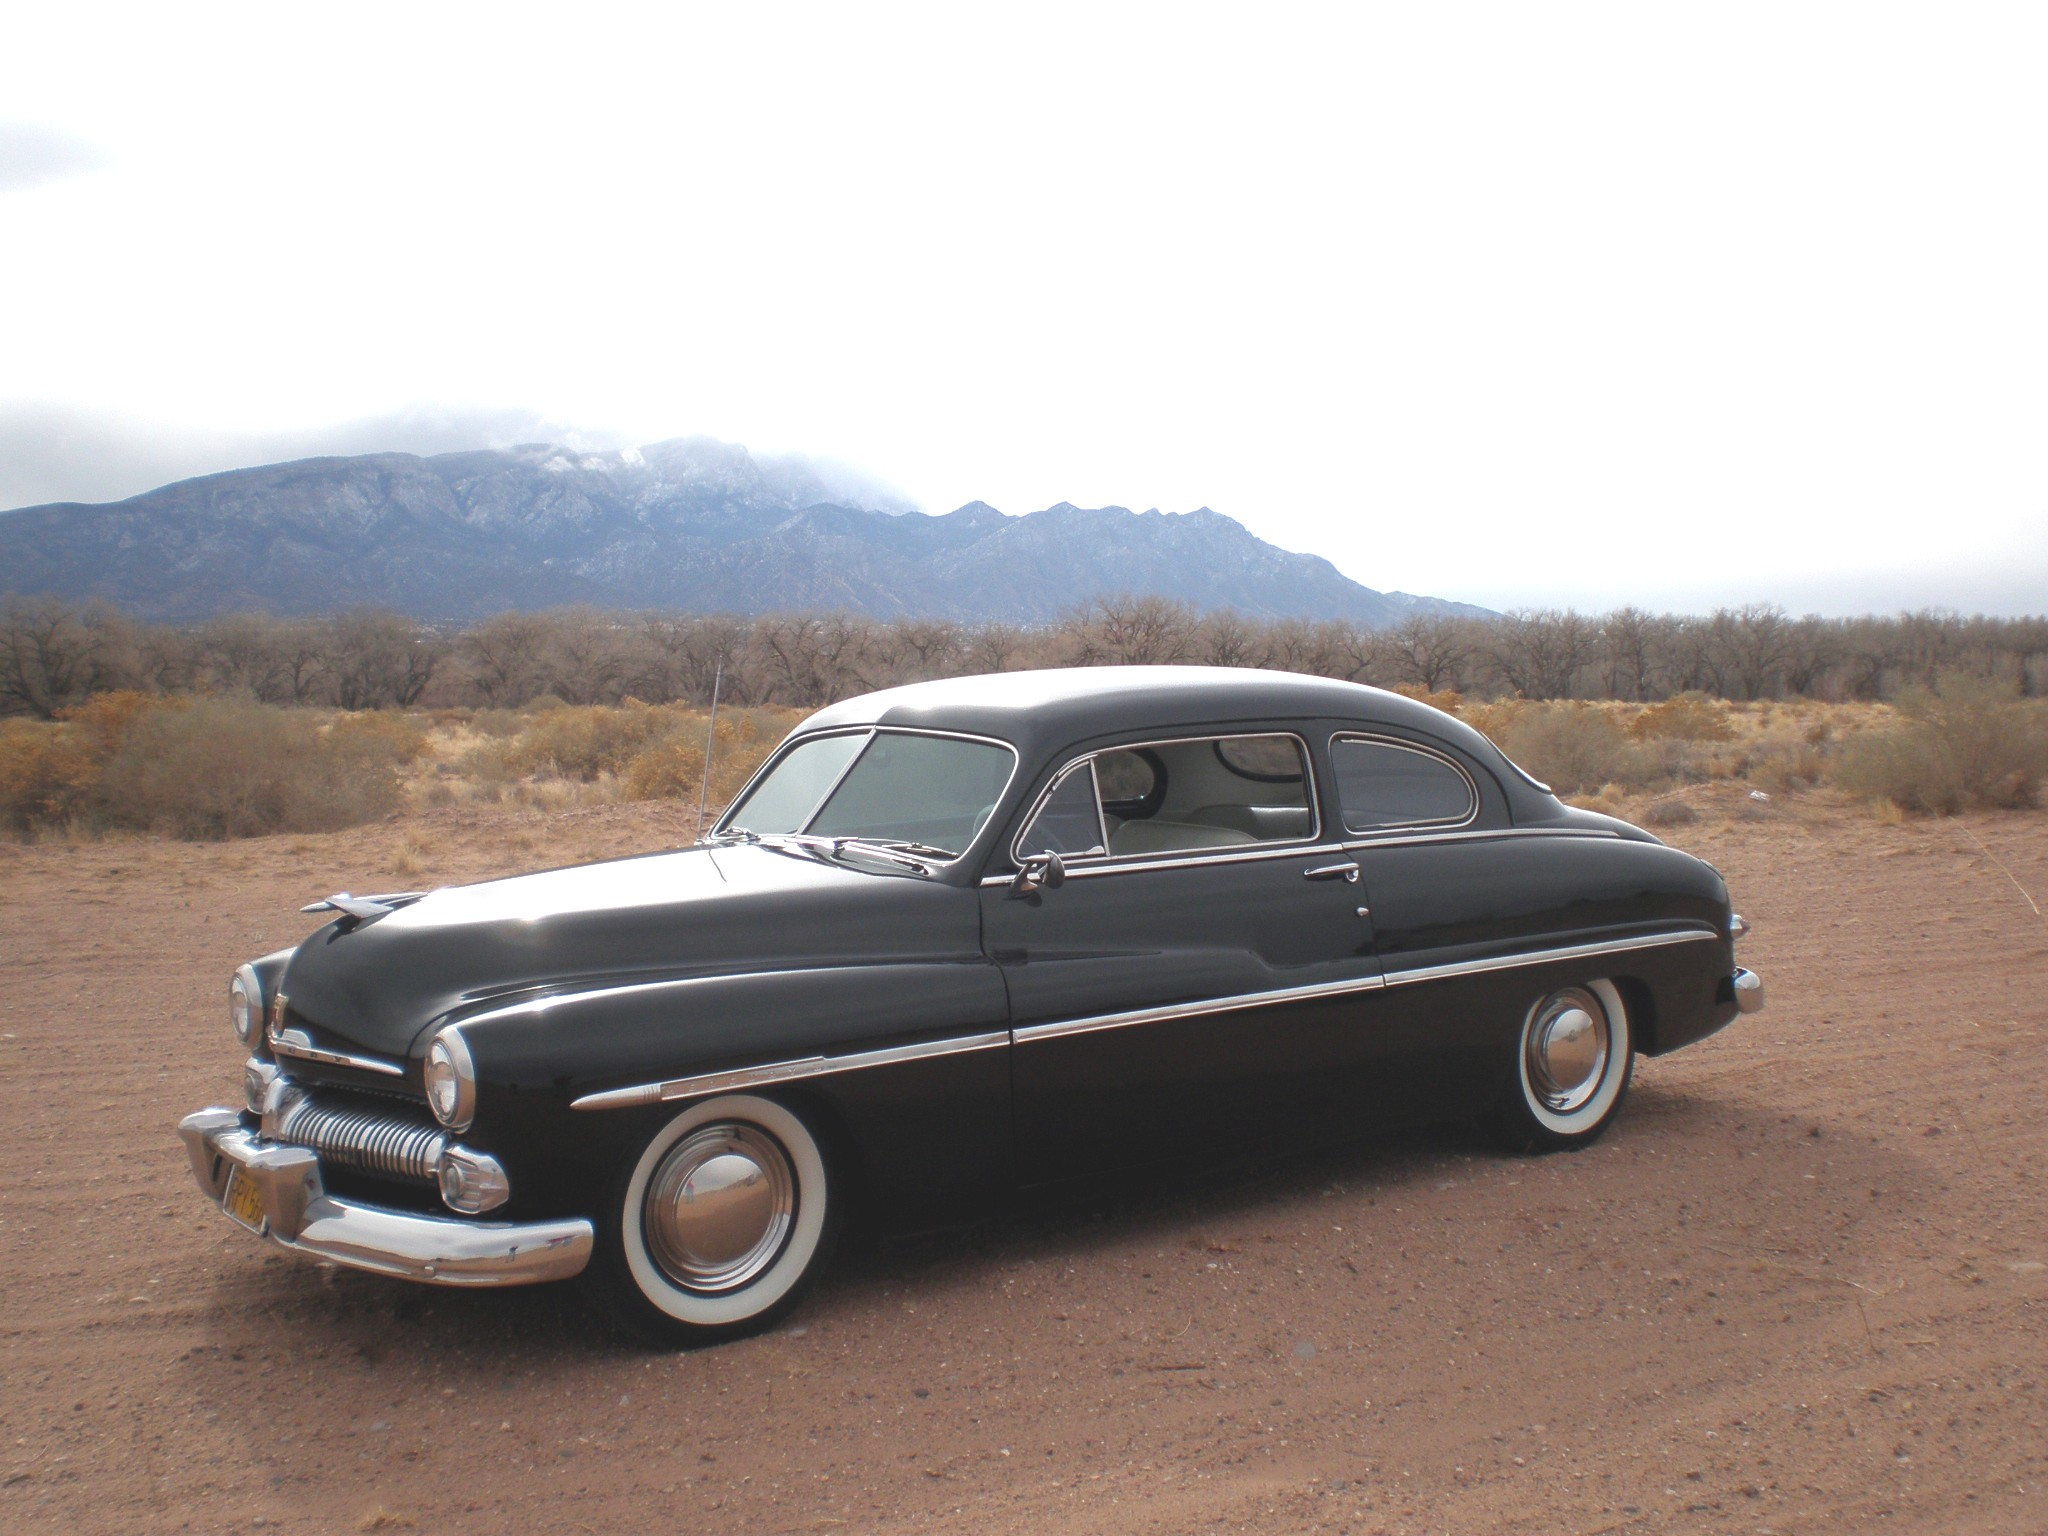 Joe Abbins 1050 Mercury.jpg